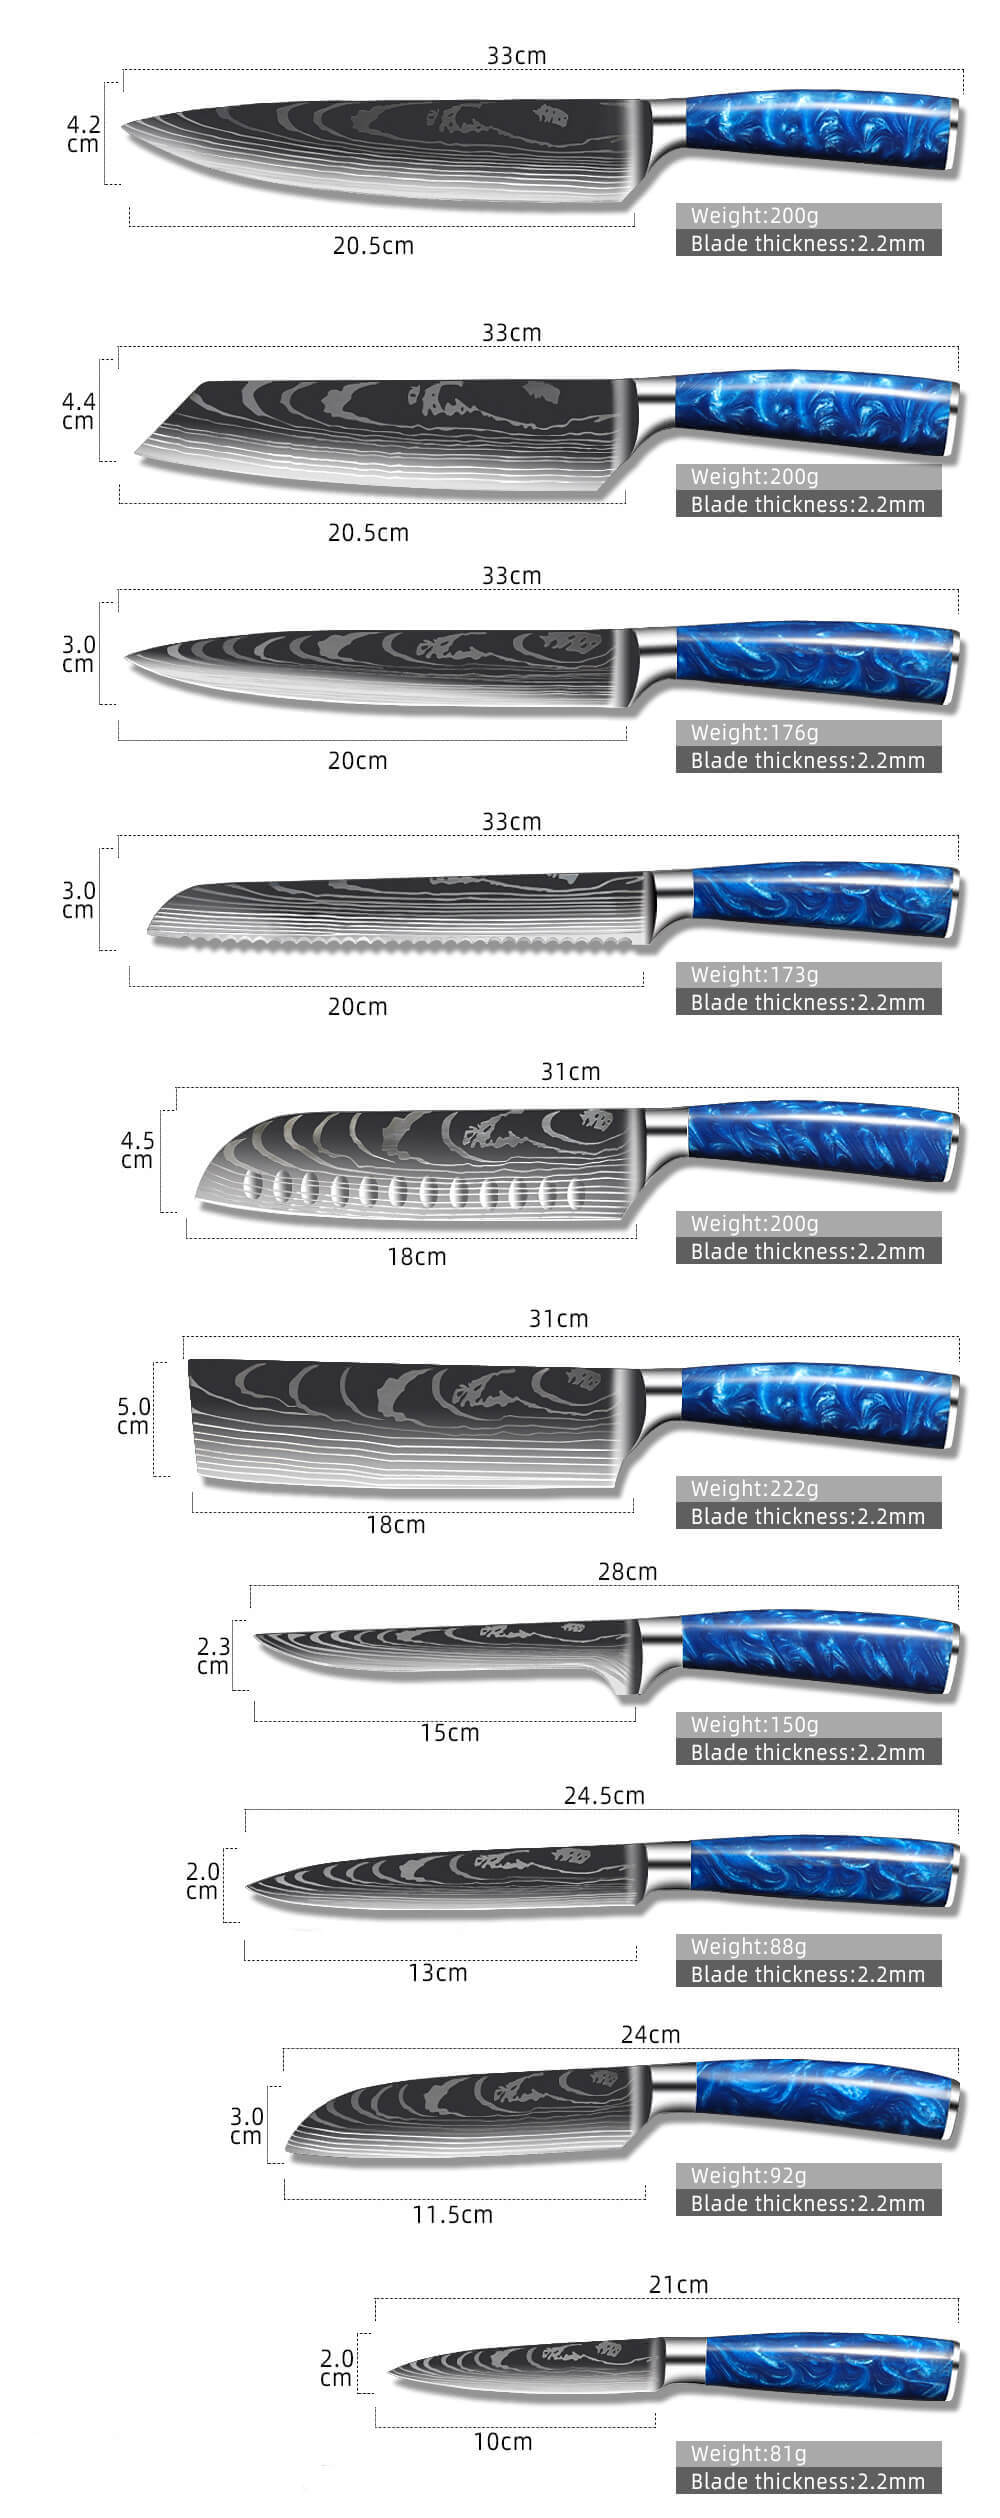 10 PIECE STAINLESS STEEL KNIFE SET, BLUE RESIN HANDLE